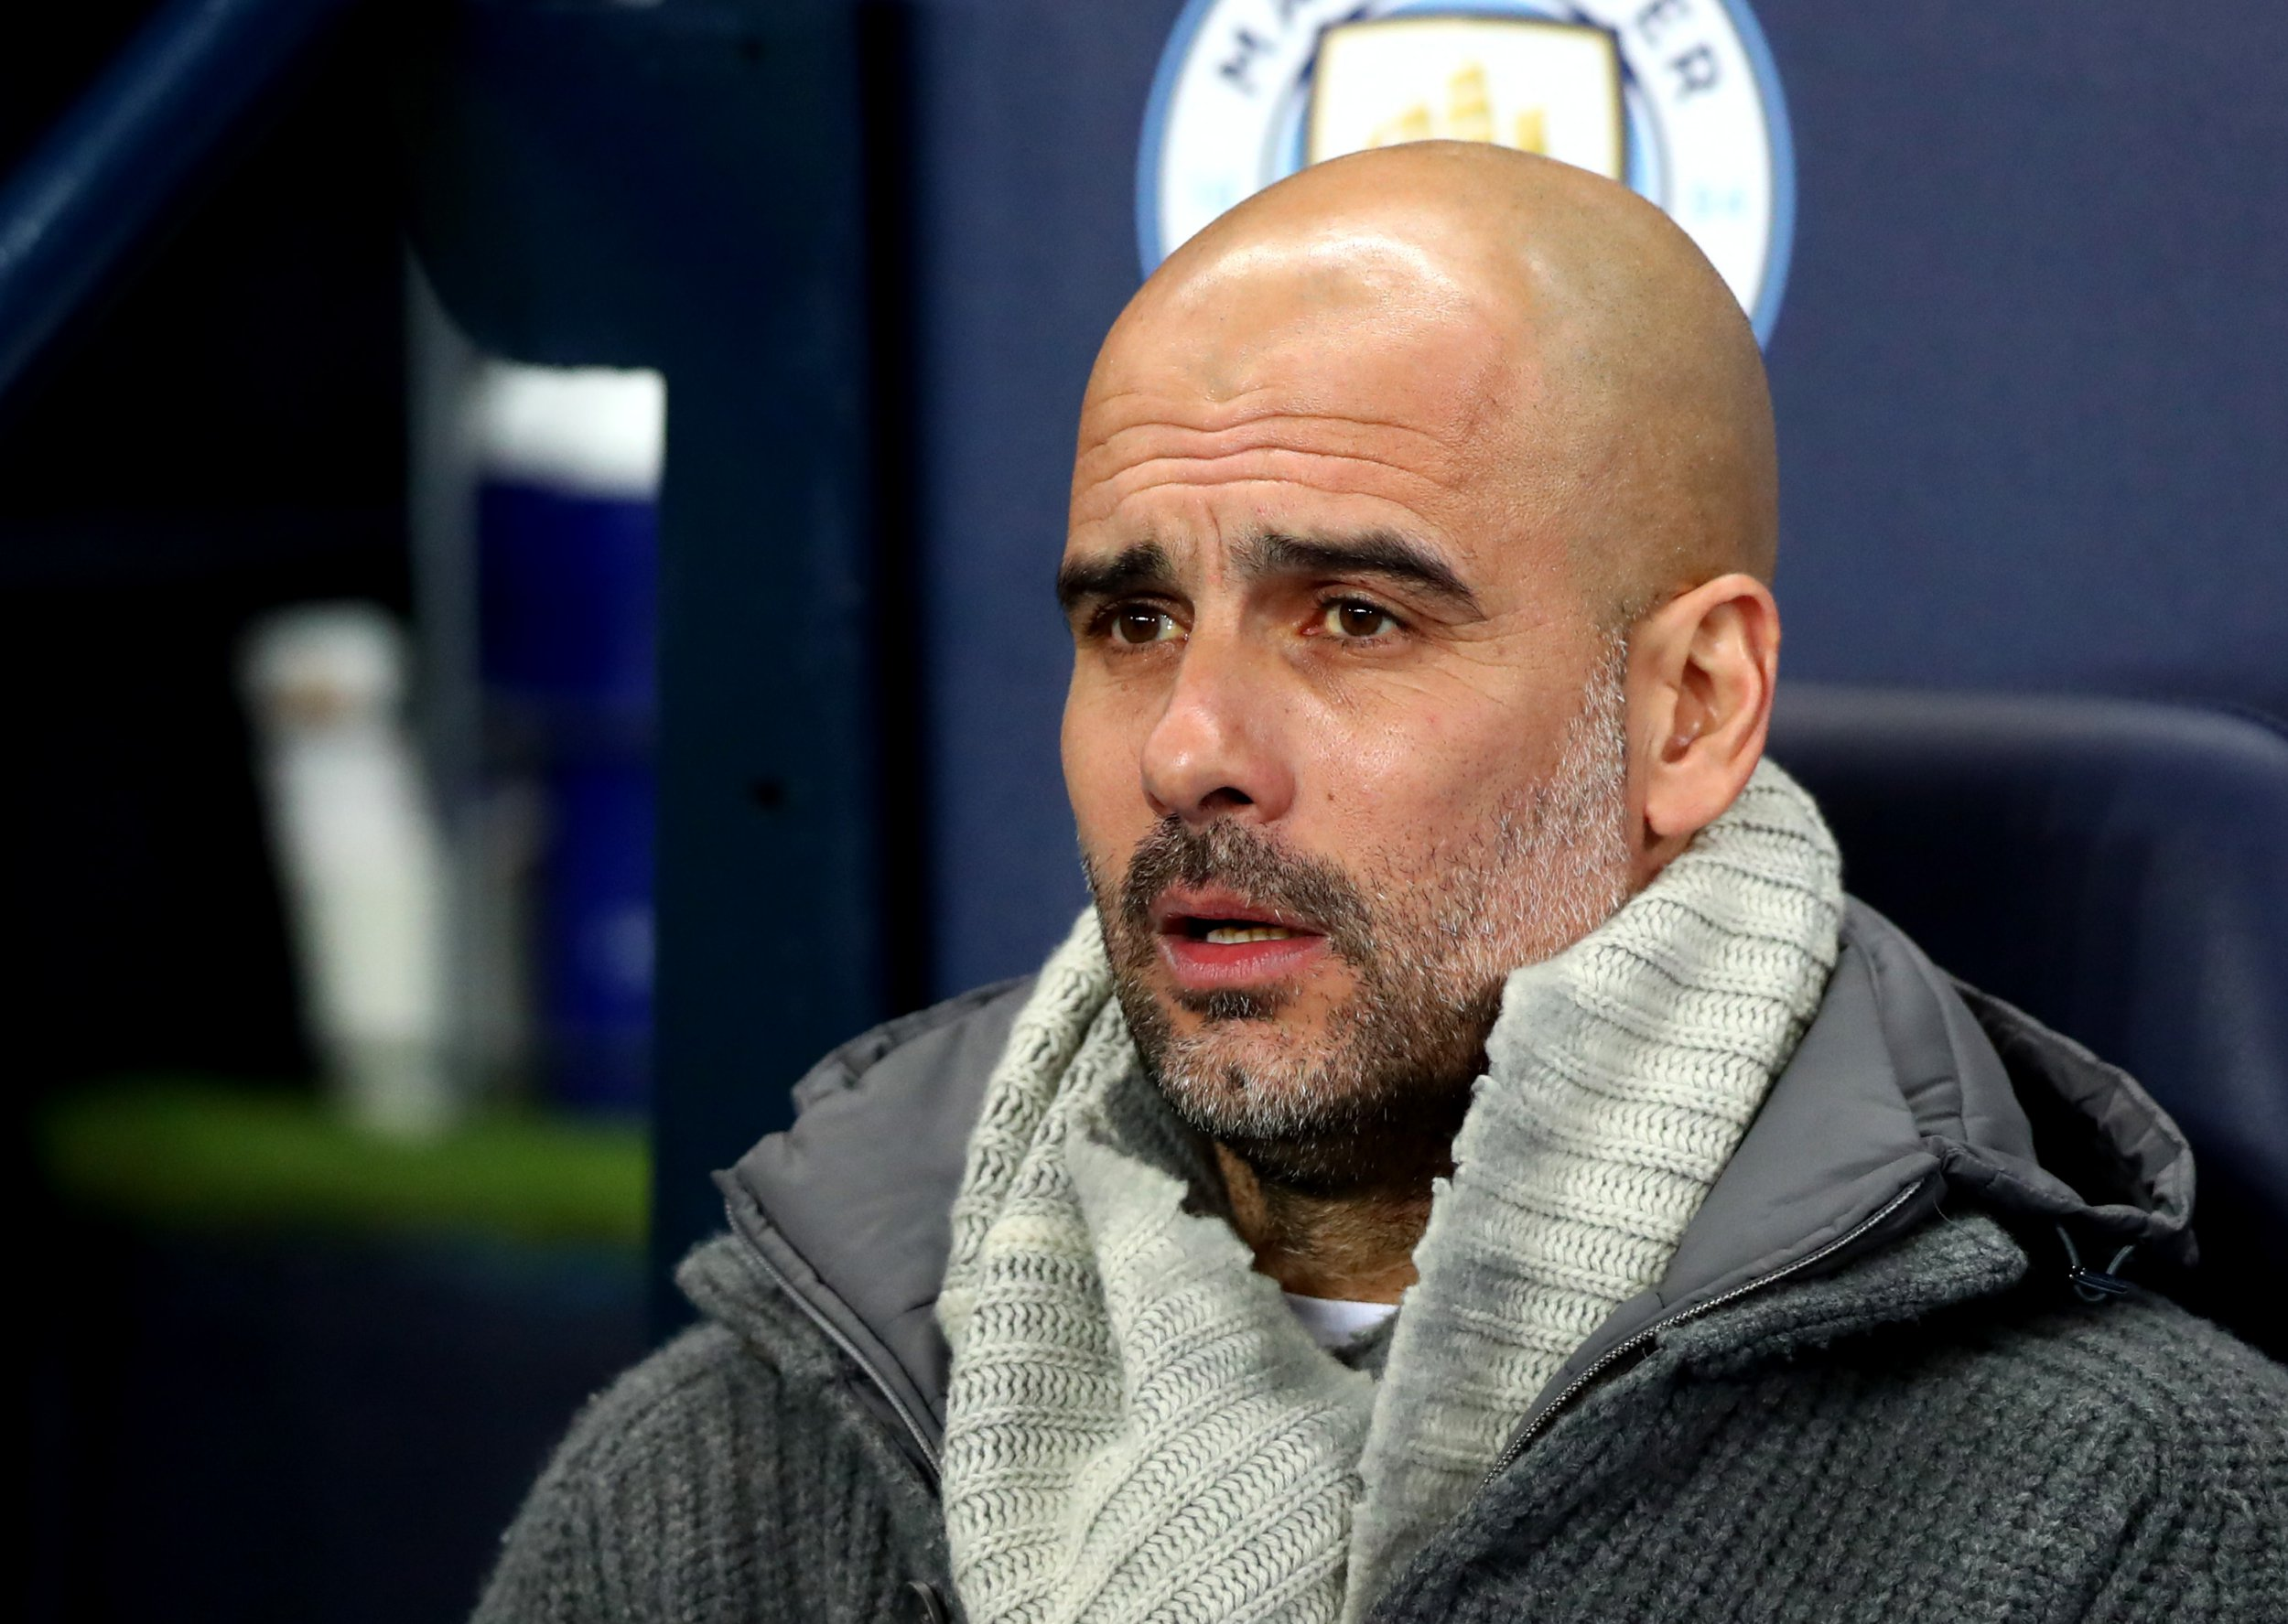 MANCHESTER, ENGLAND - MARCH 12: Manchester City Manager Pep Guardiola looks on during the UEFA Champions League Round of 16 Second Leg match between Manchester City and FC Schalke 04 at Etihad Stadium on March 12, 2019 in Manchester, England. (Photo by Chloe Knott - Danehouse/Getty Images)